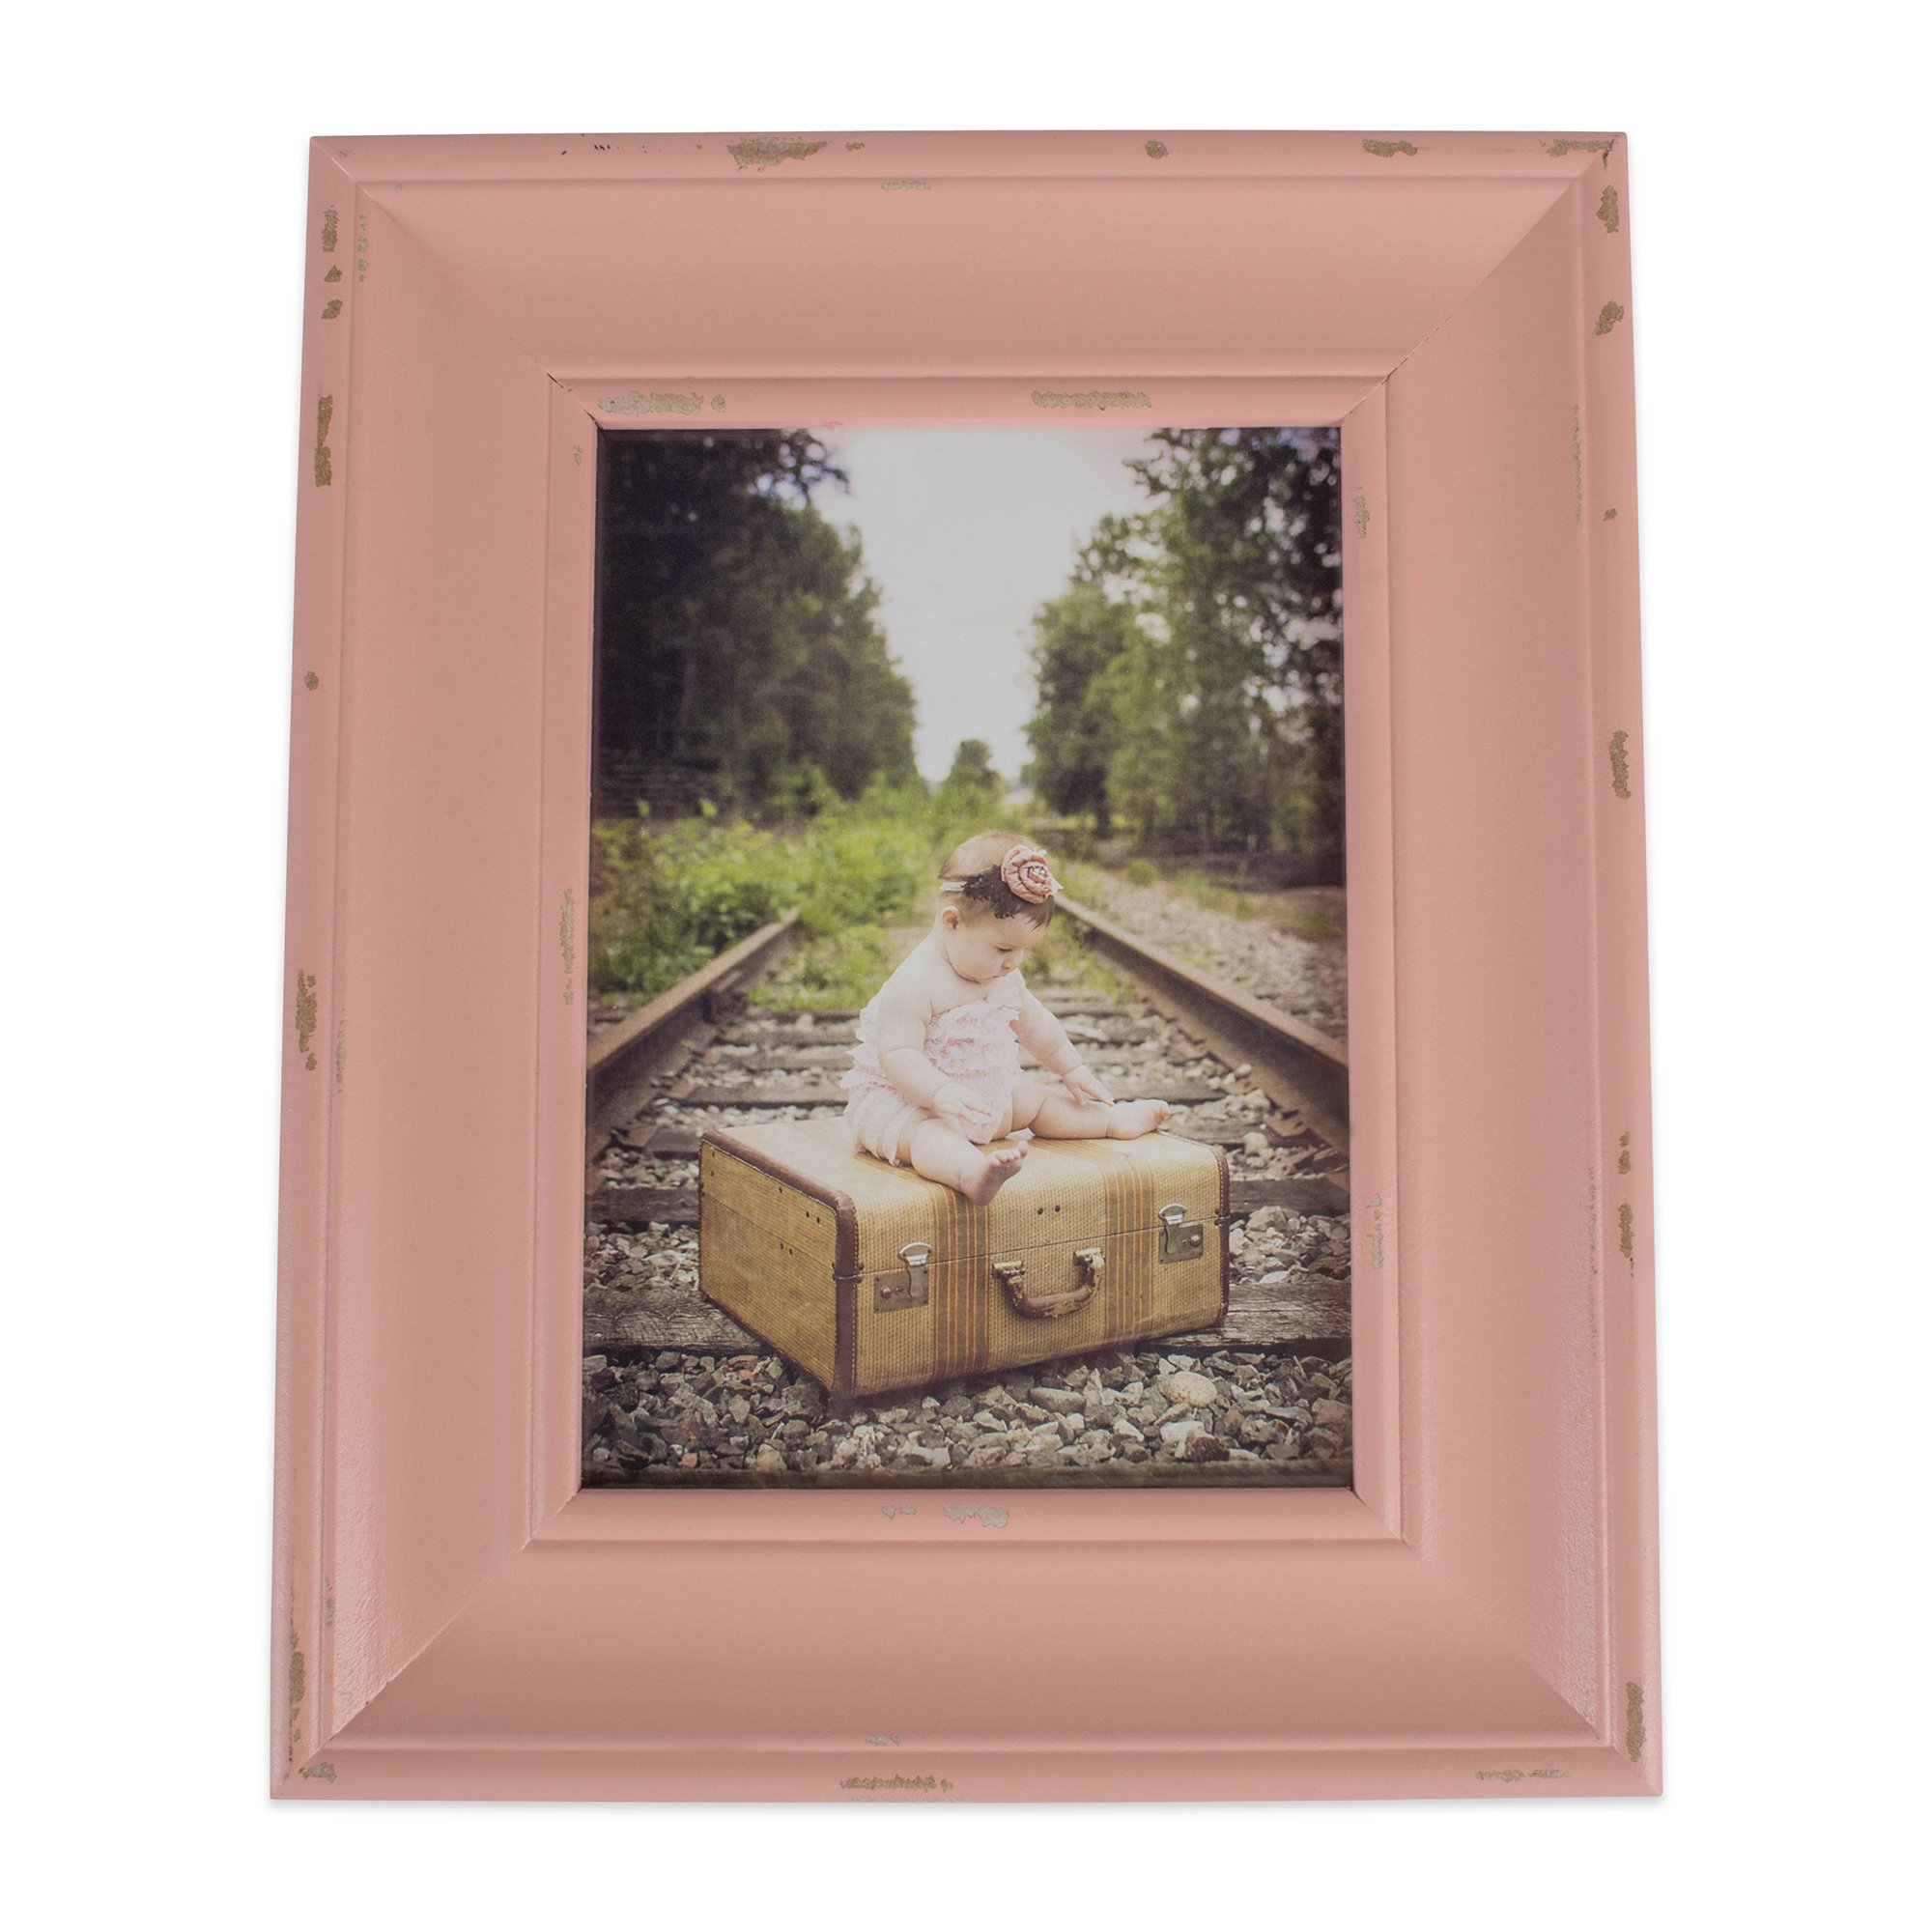 Home Traditions Z02253 Rustic Farmhouse Distressed Wooden Picture Frame for Wall Hanging or Desk Use, 8x10 Inch, Blush